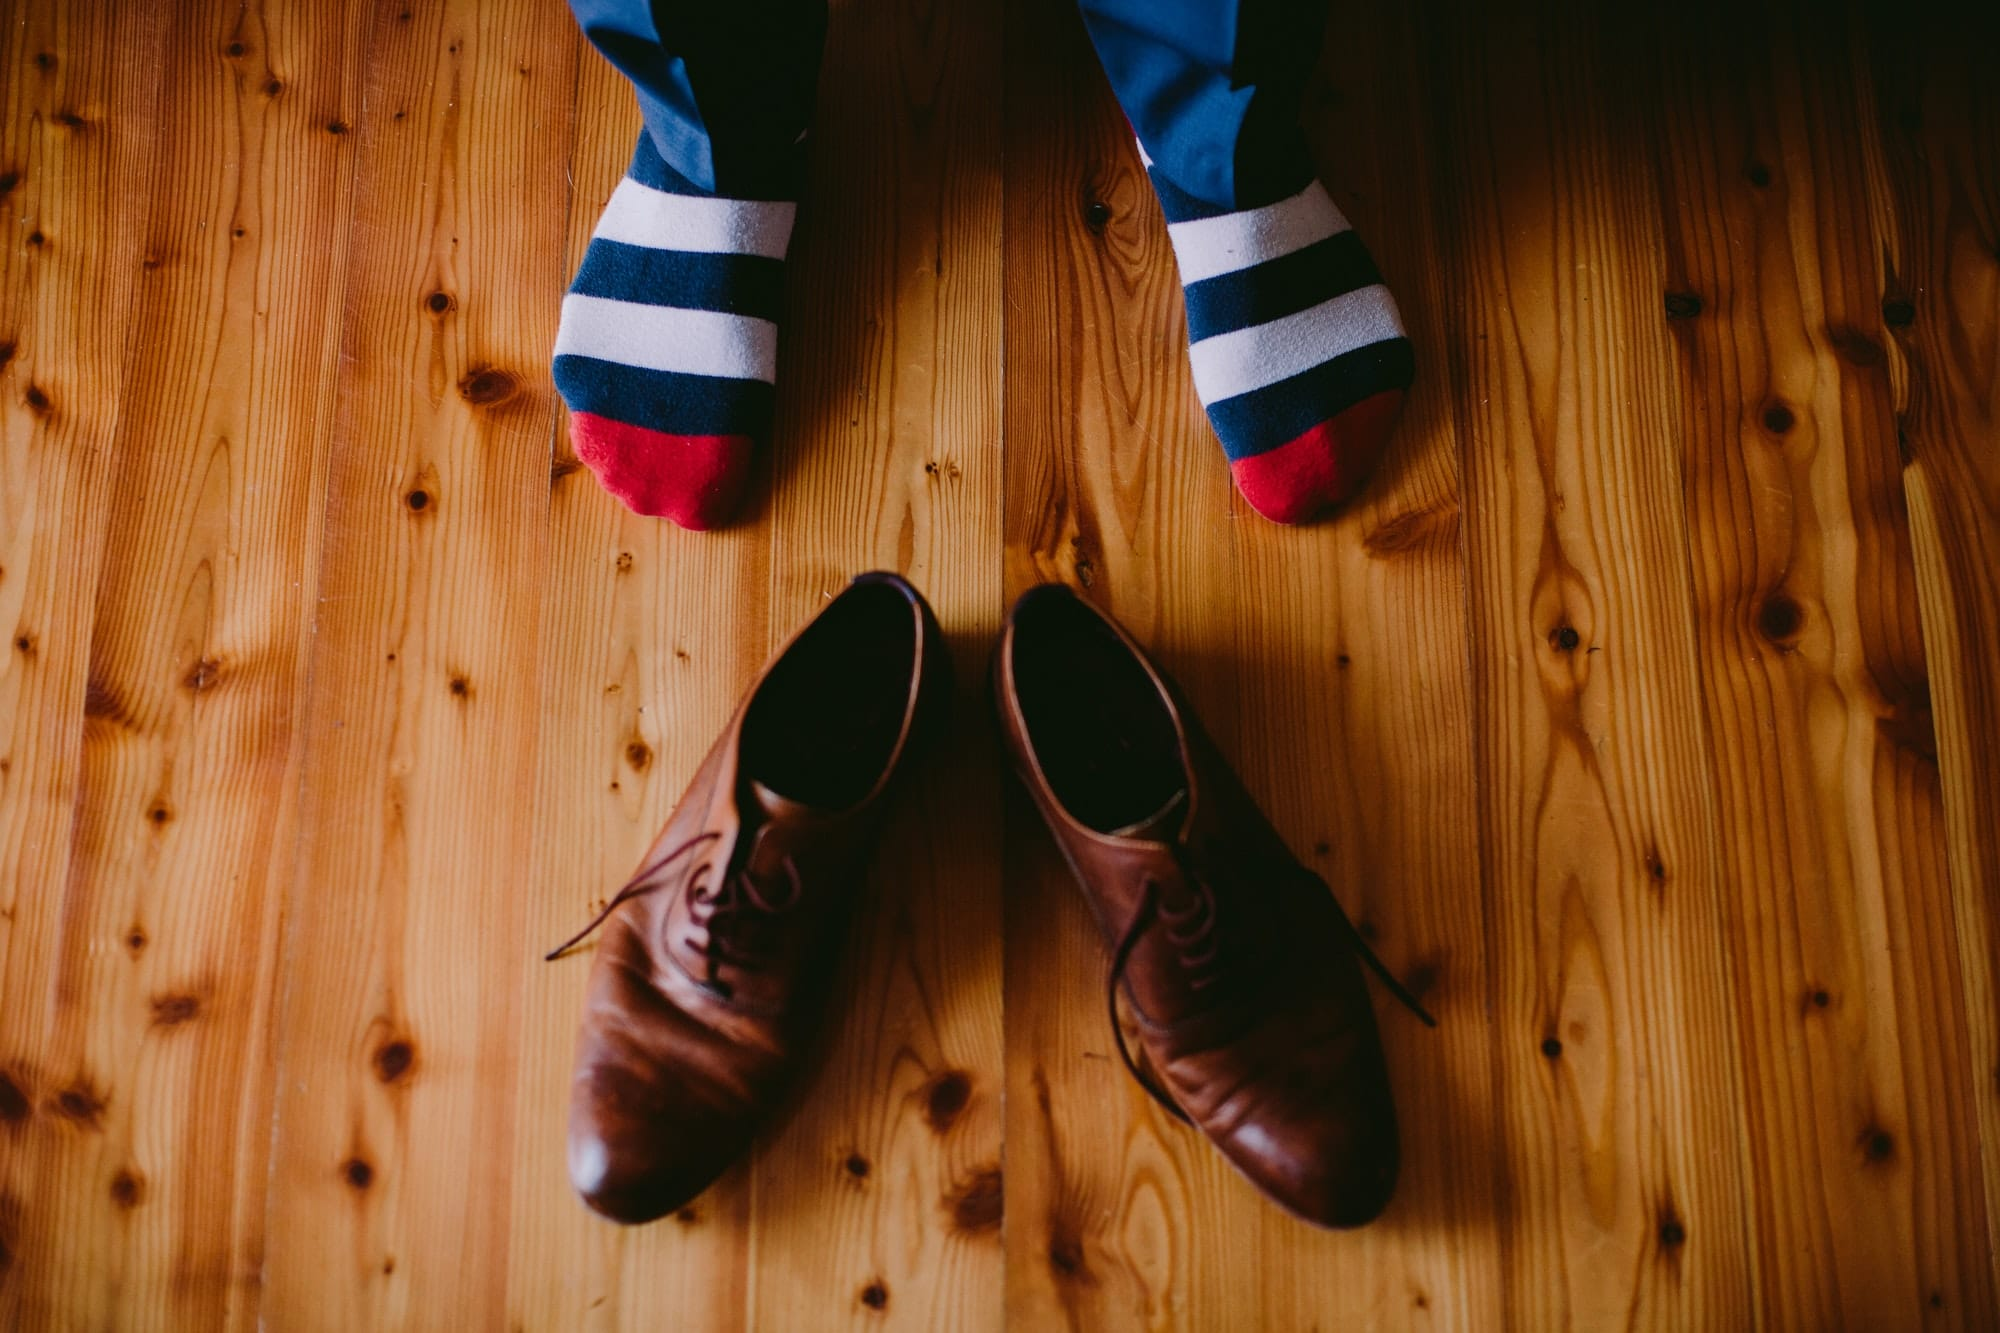 man wearing colourful socks and shoes